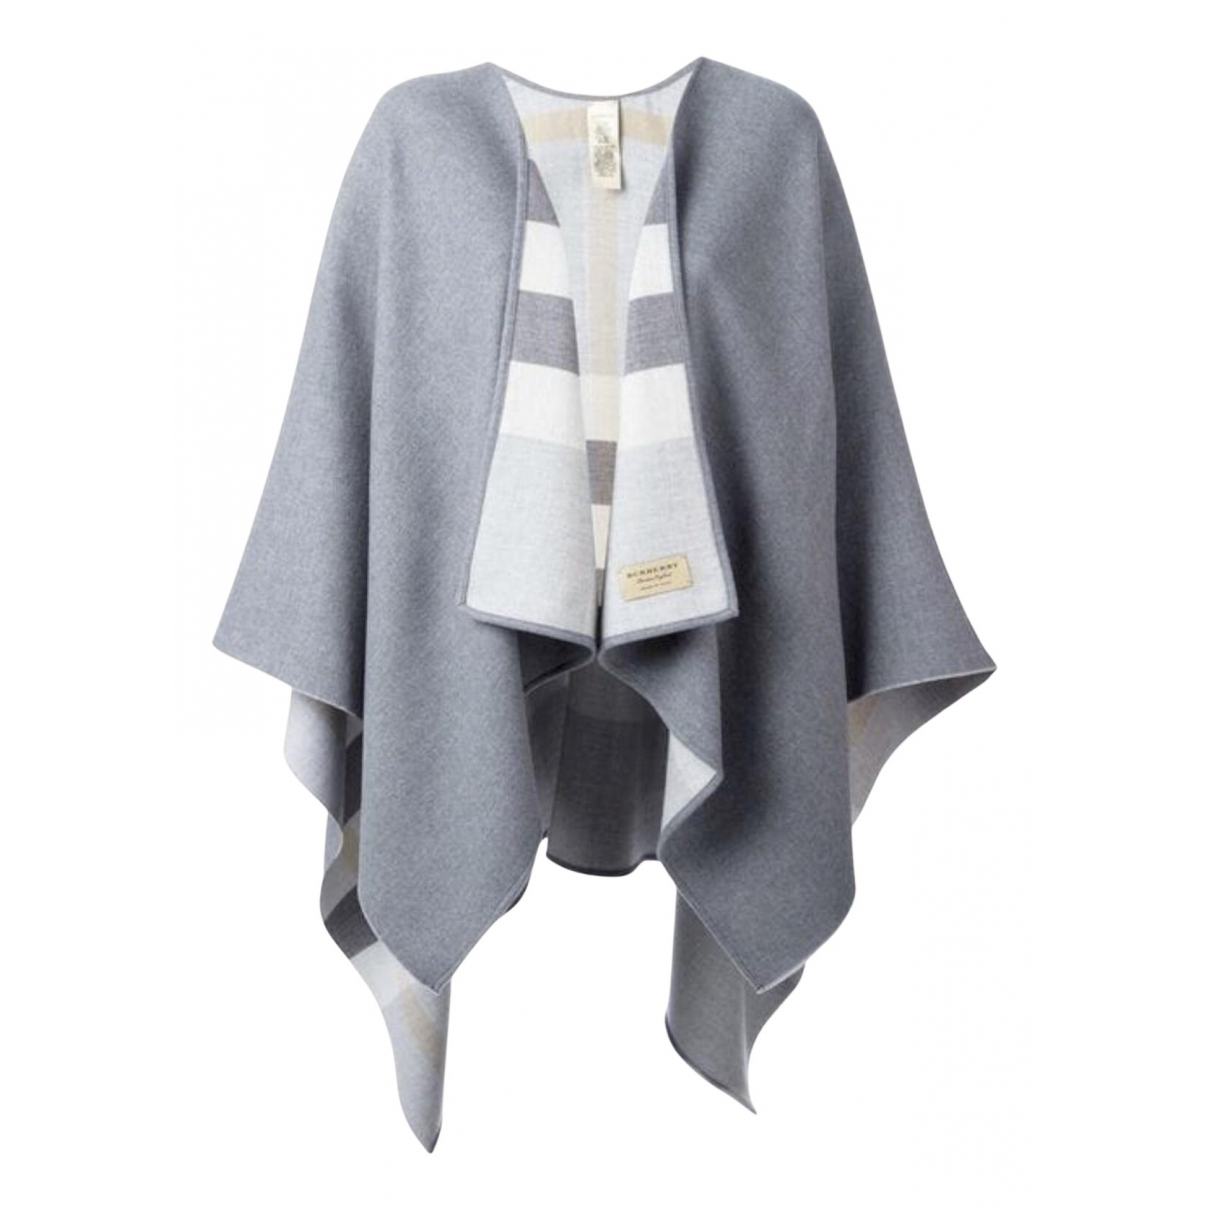 Burberry \N Grey Wool jacket for Women One Size FR